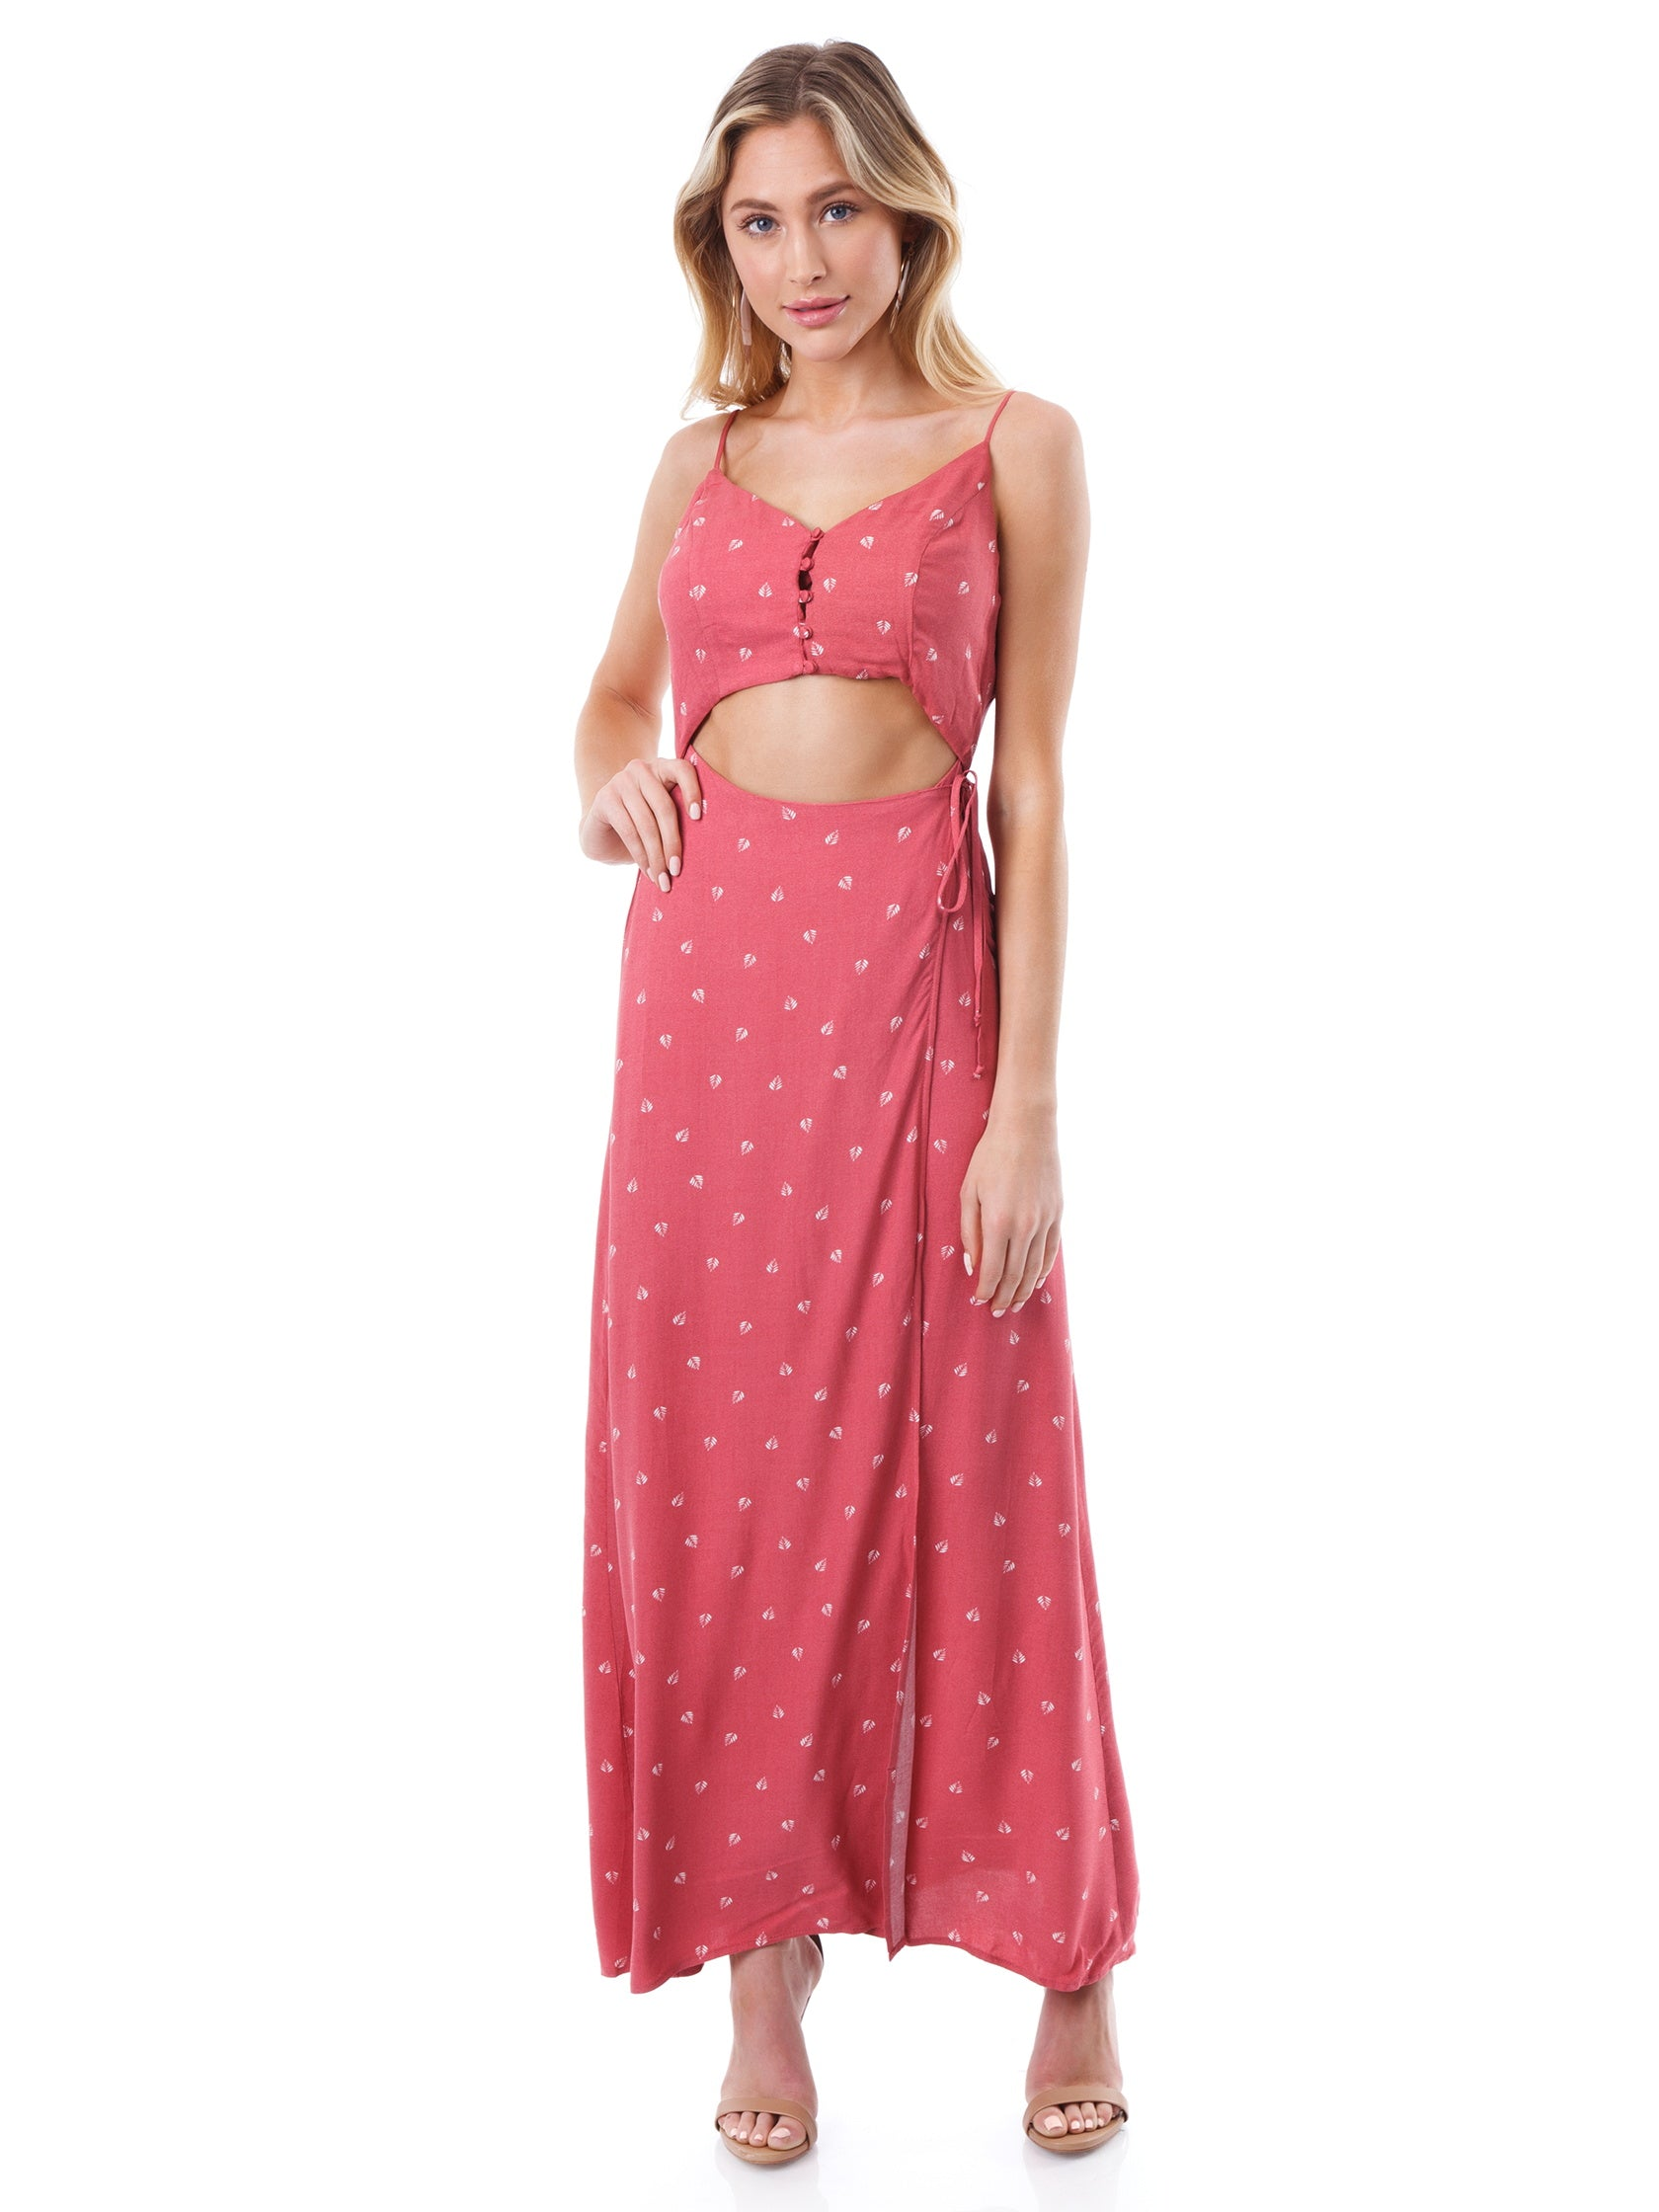 Girl outfit in a dress rental from Lush called Sleeveless Wrap Maxi Dress